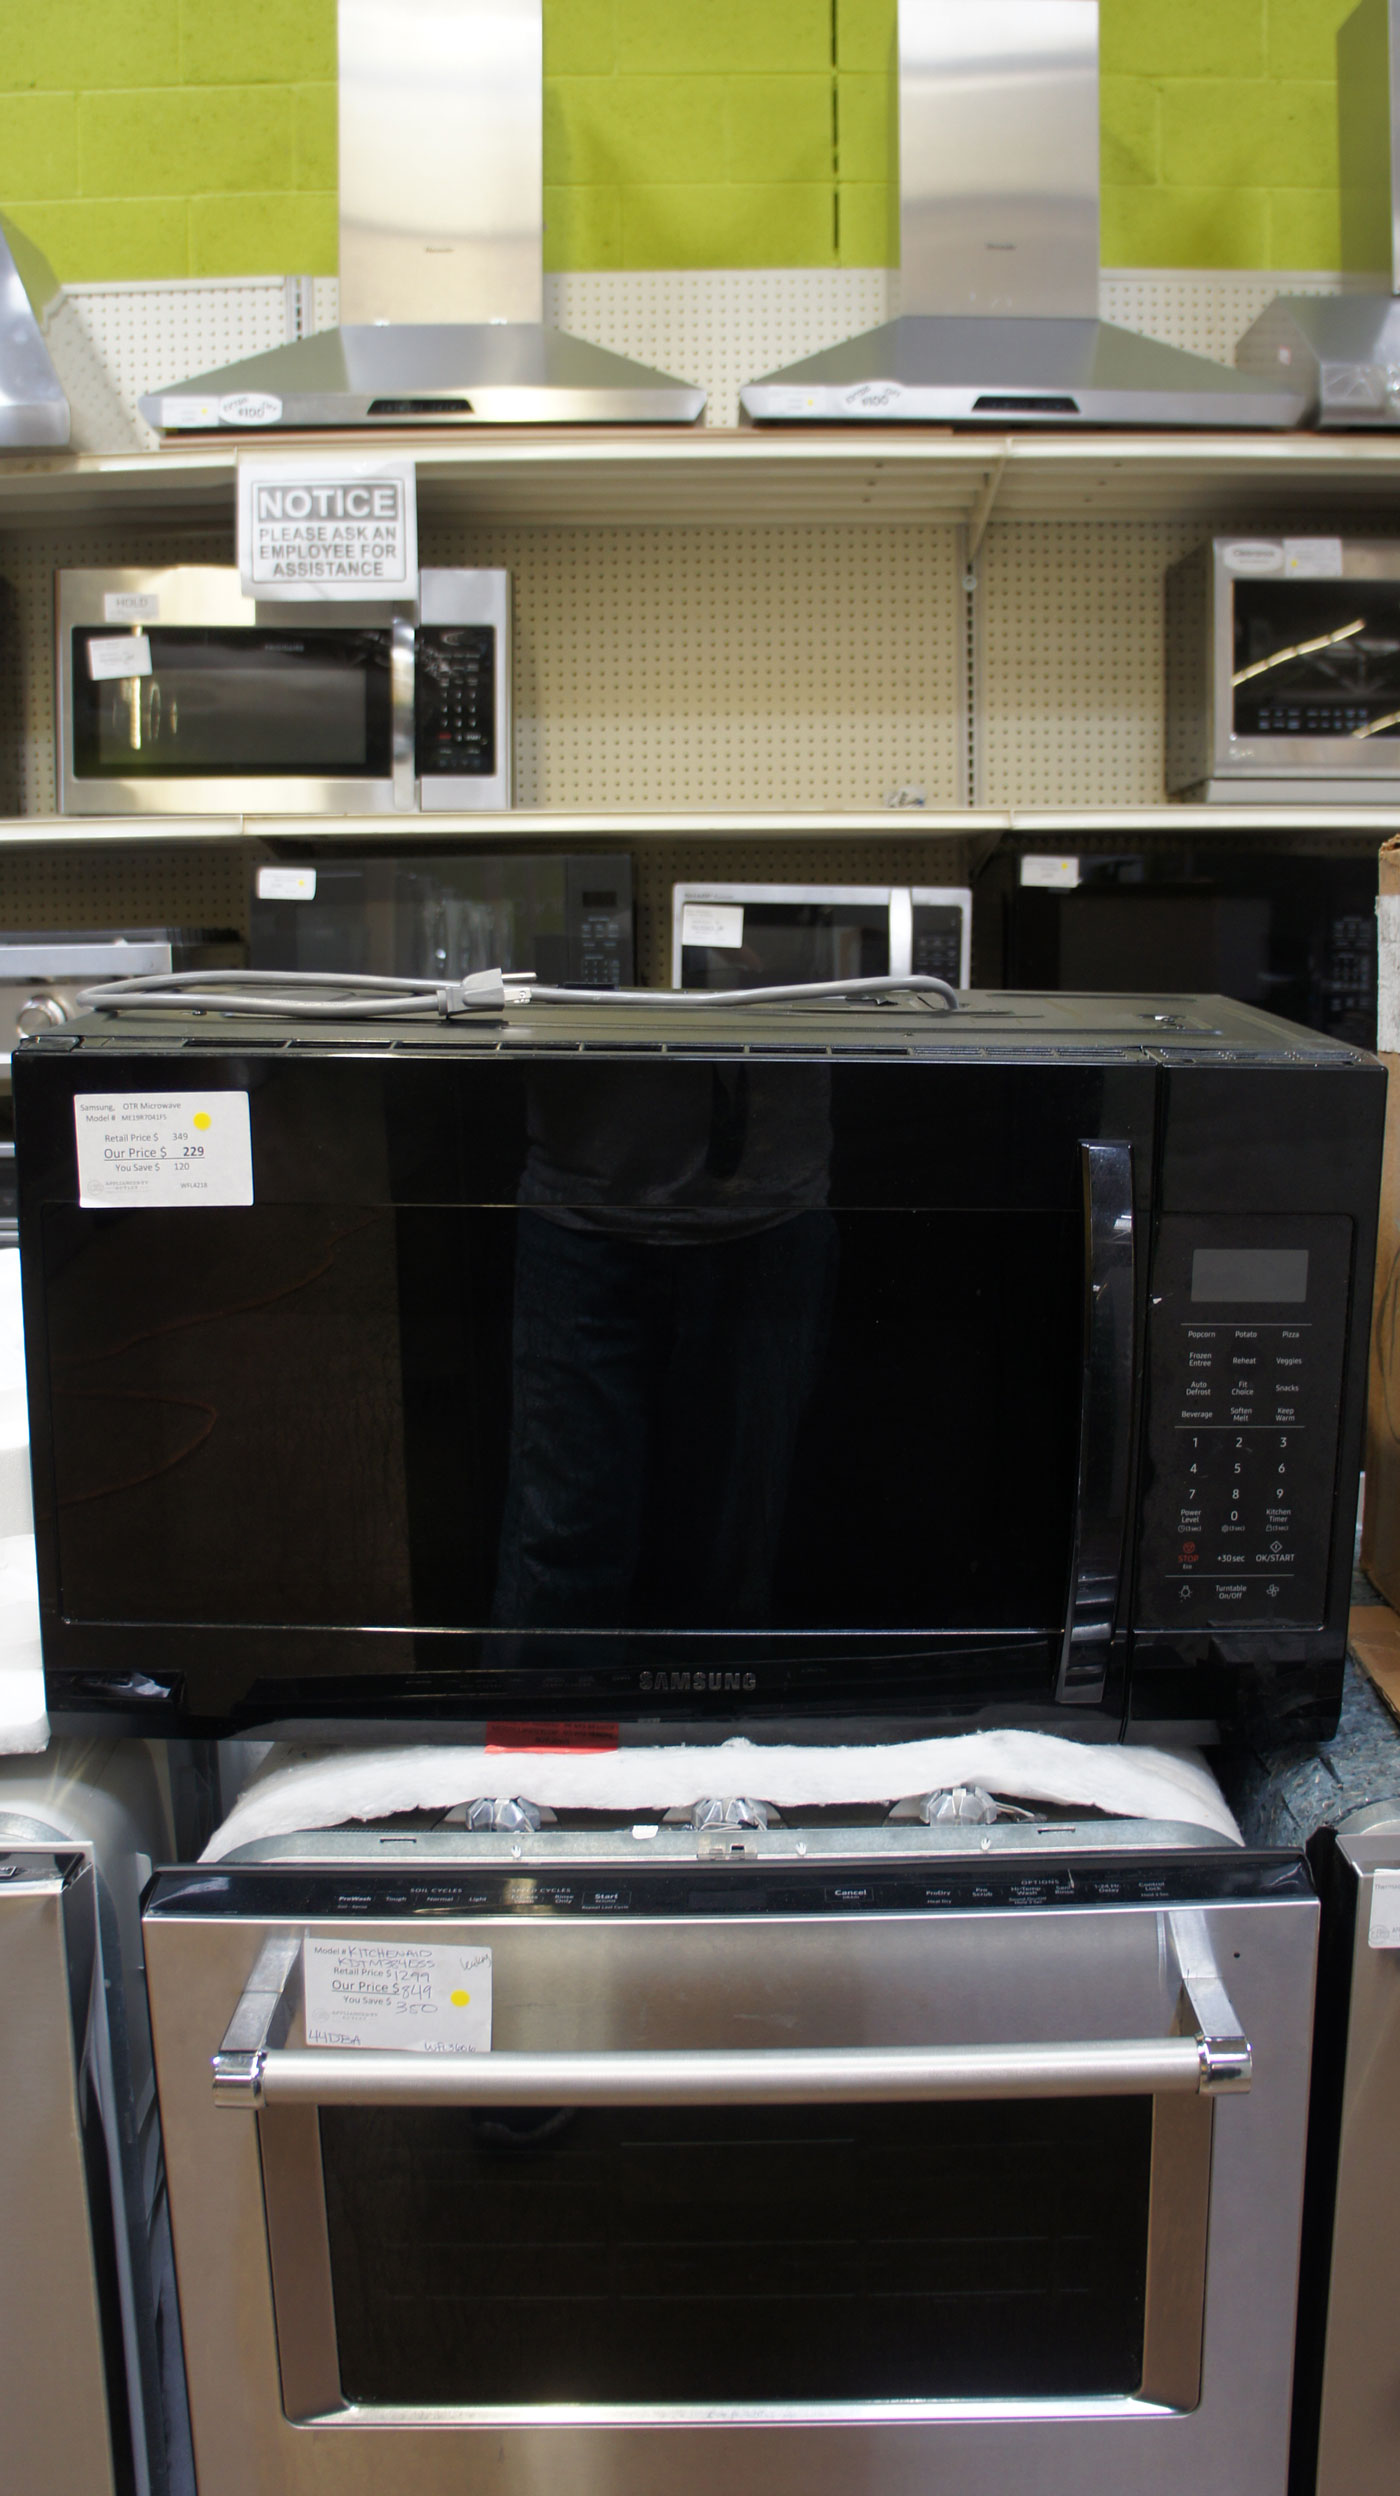 1.9 cu.ft. Samsung ME19R7041FS Over-The-Range Microwave Oven